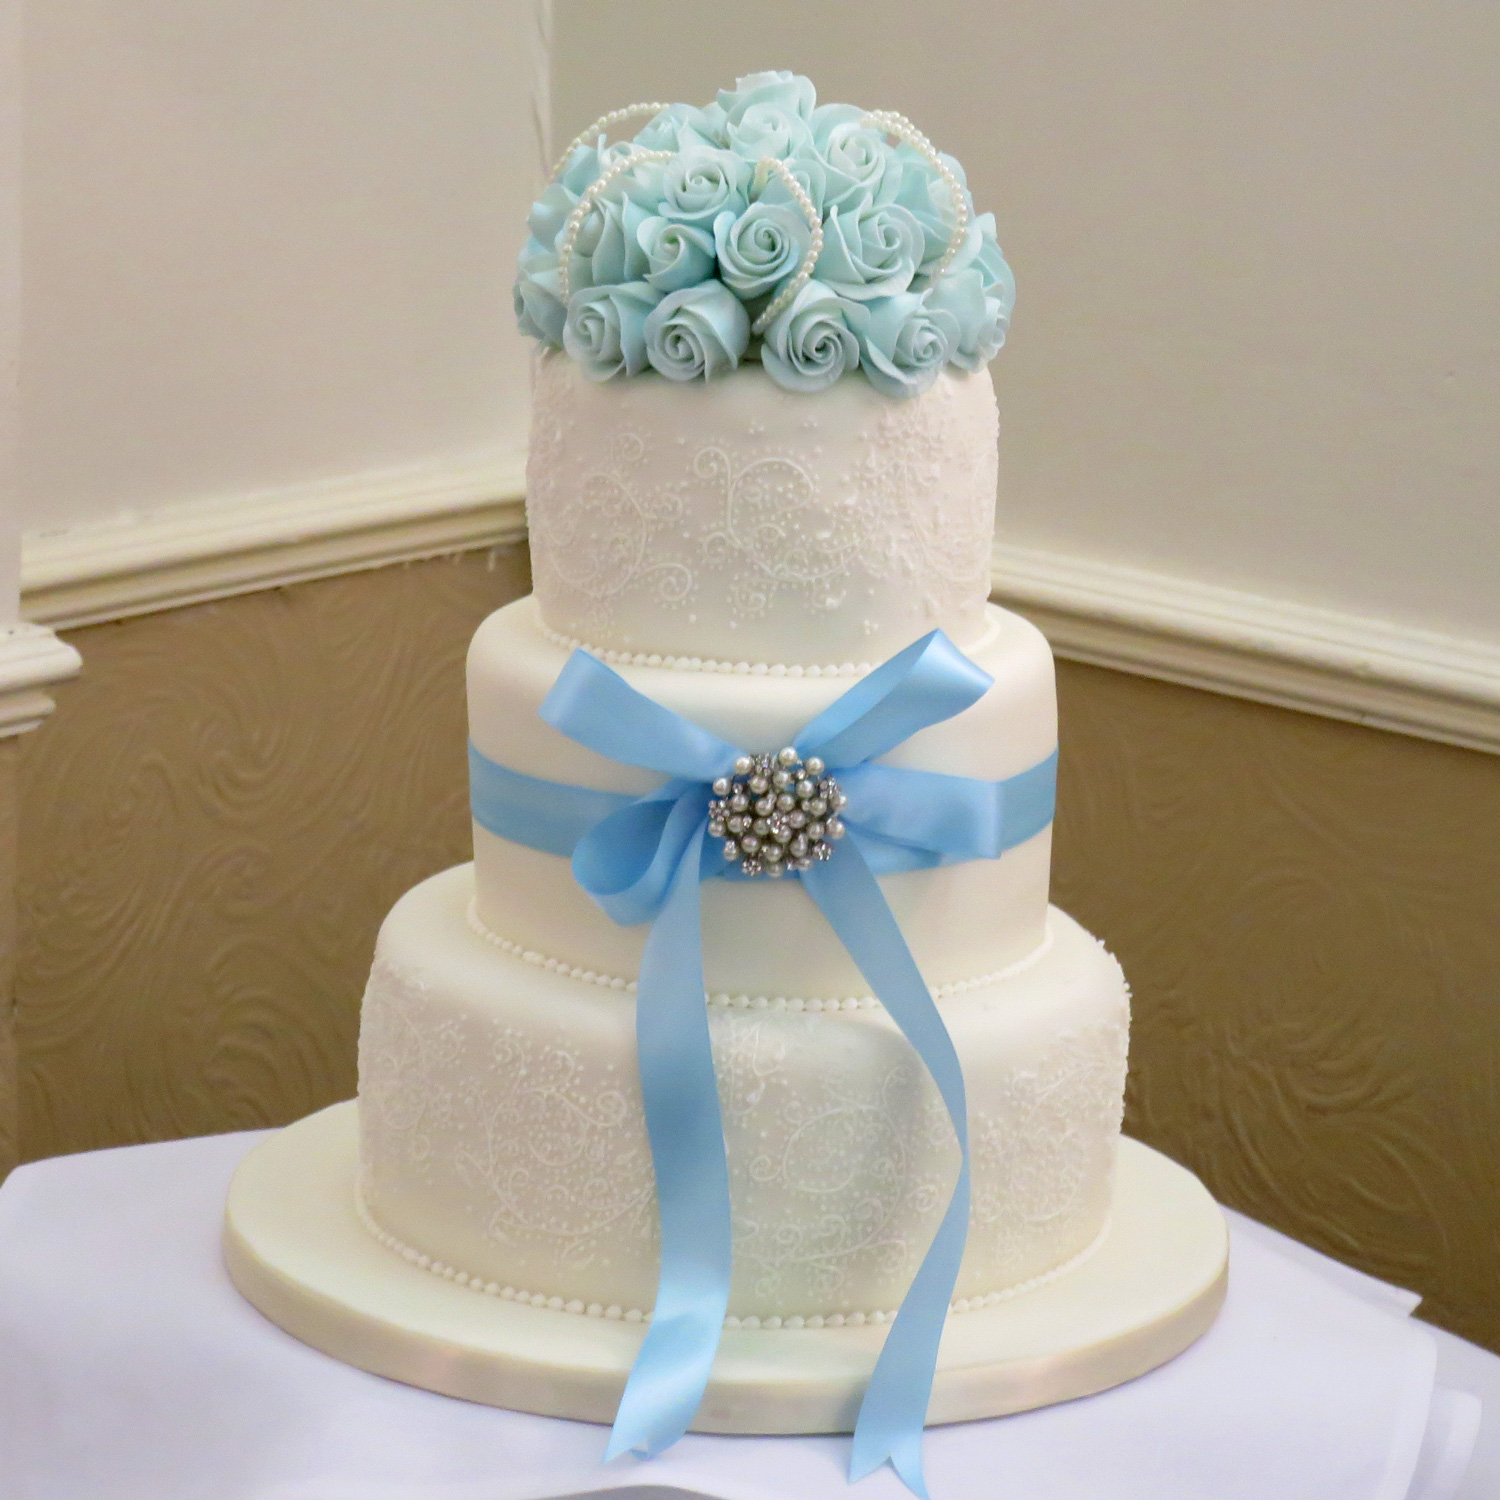 Pretty Blue shaded roses with icing embroidery.